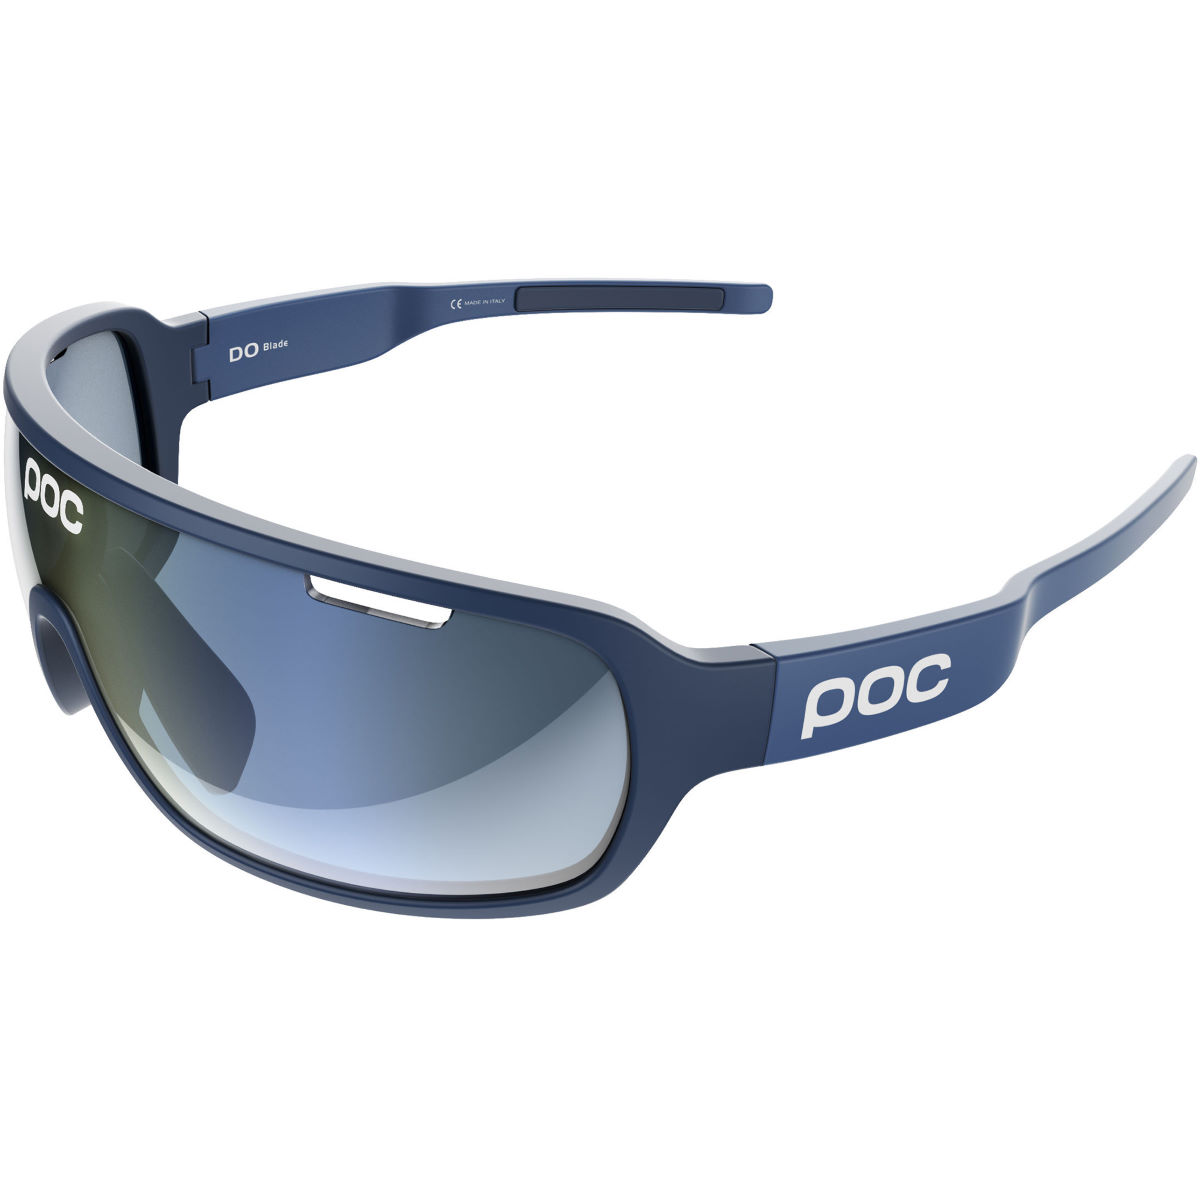 POC Do Blade Clarity Sunglasses - Gafas de sol